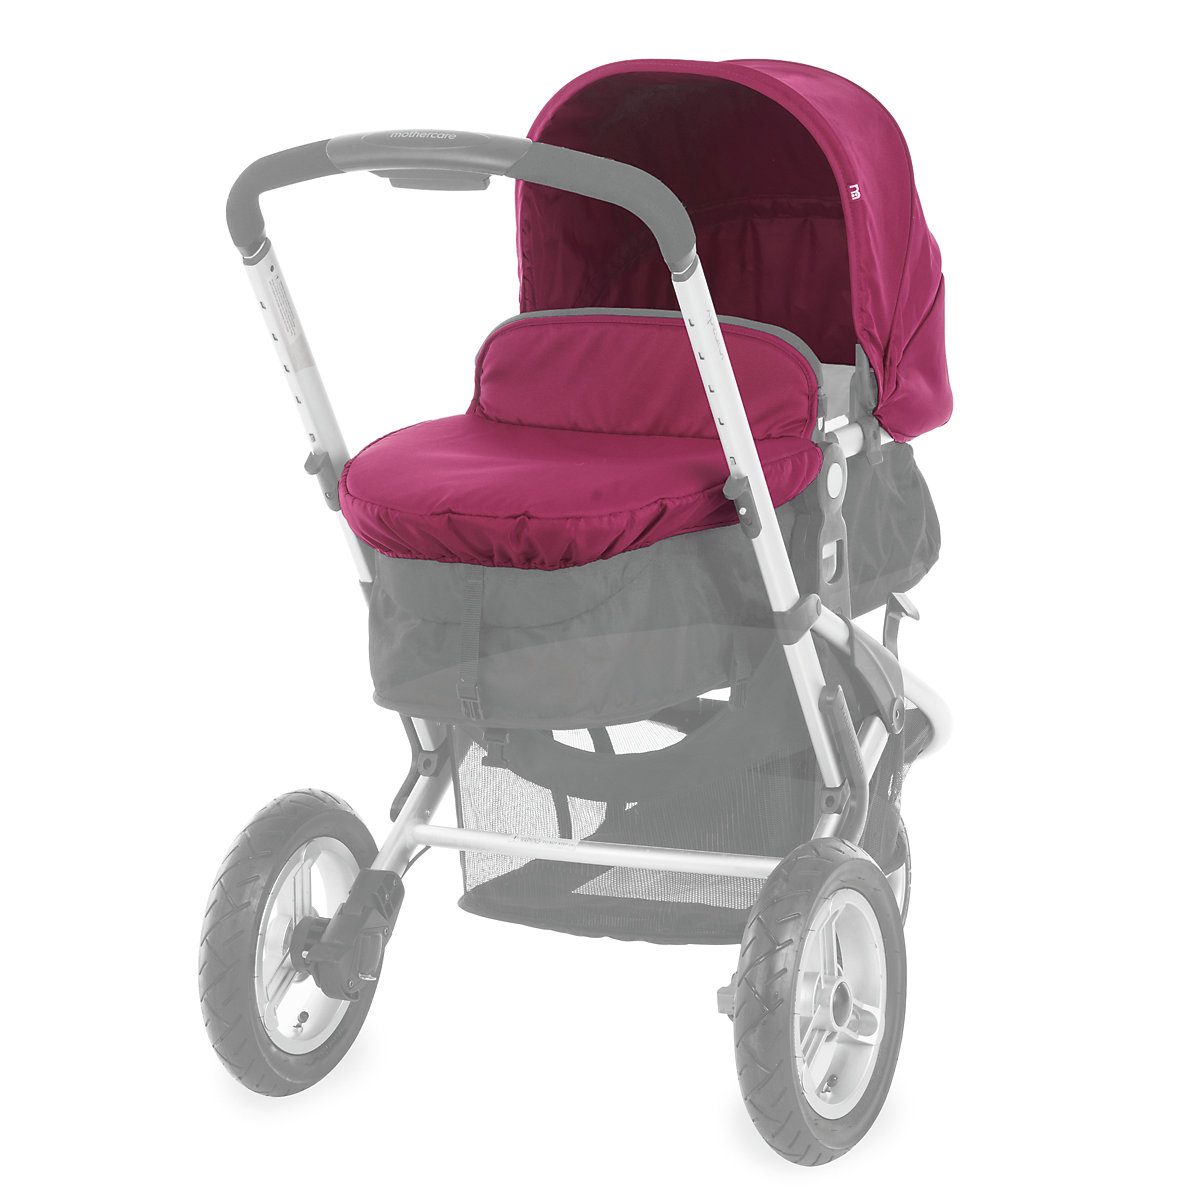 Mothercare Xpedior Colour Pack - Plum